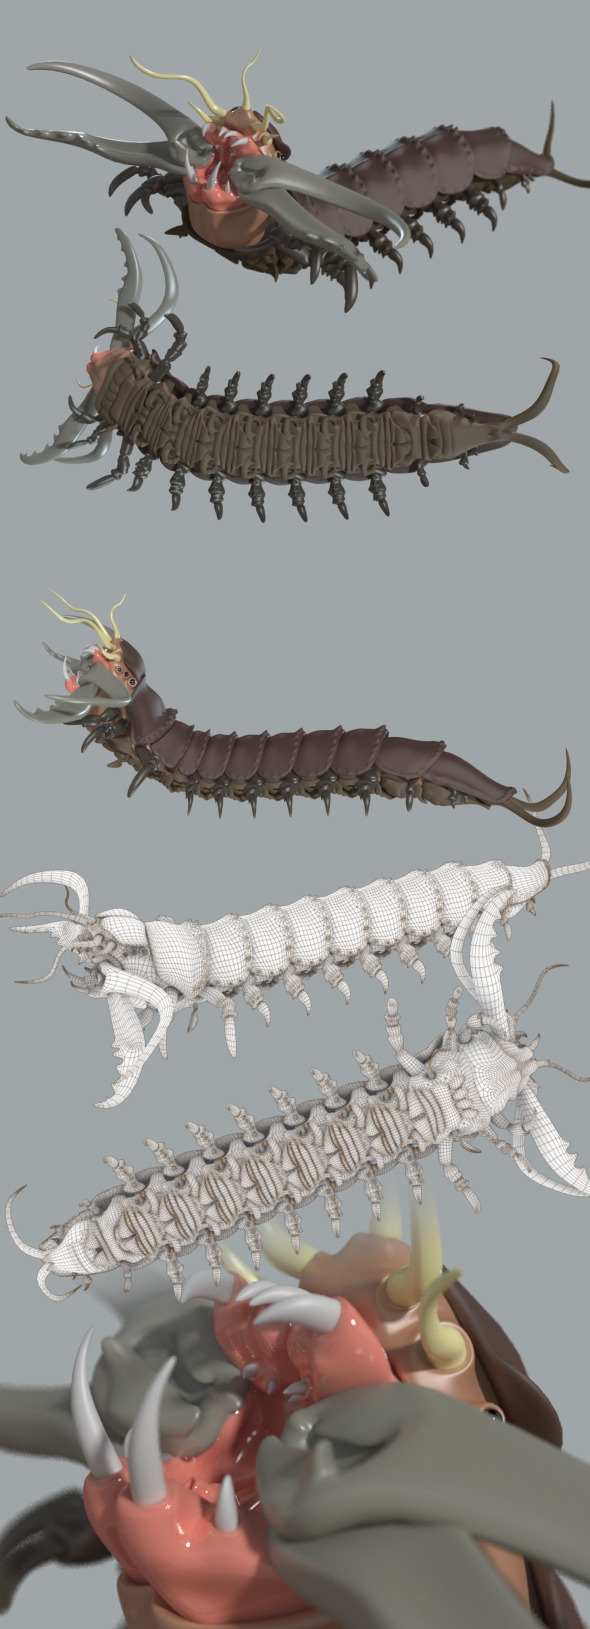 Bobbit worm - 3DOcean Item for Sale